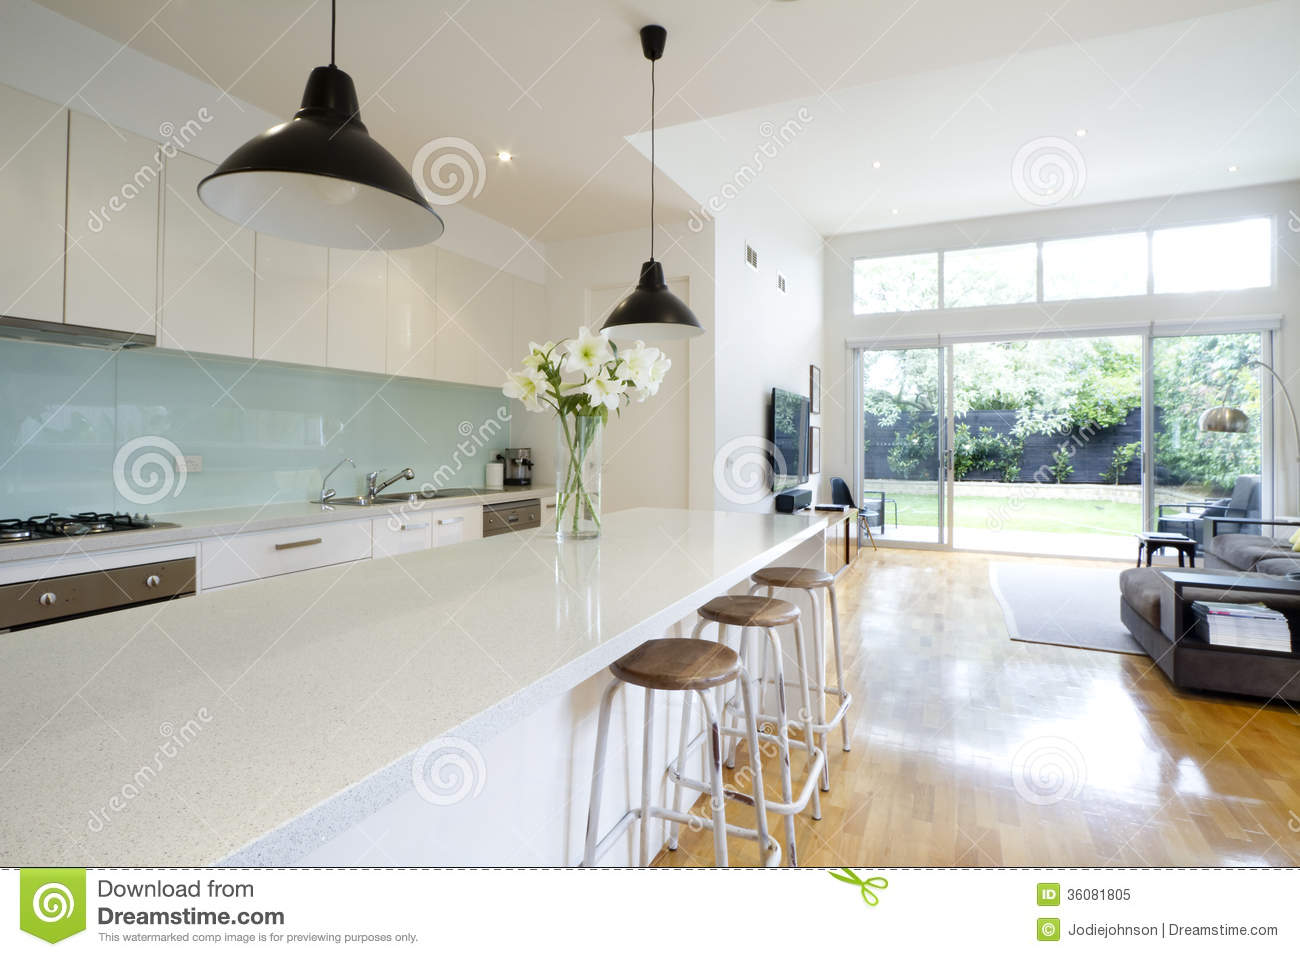 Contemporary Kitchen Living Room Royalty Free Stock Photo - Image